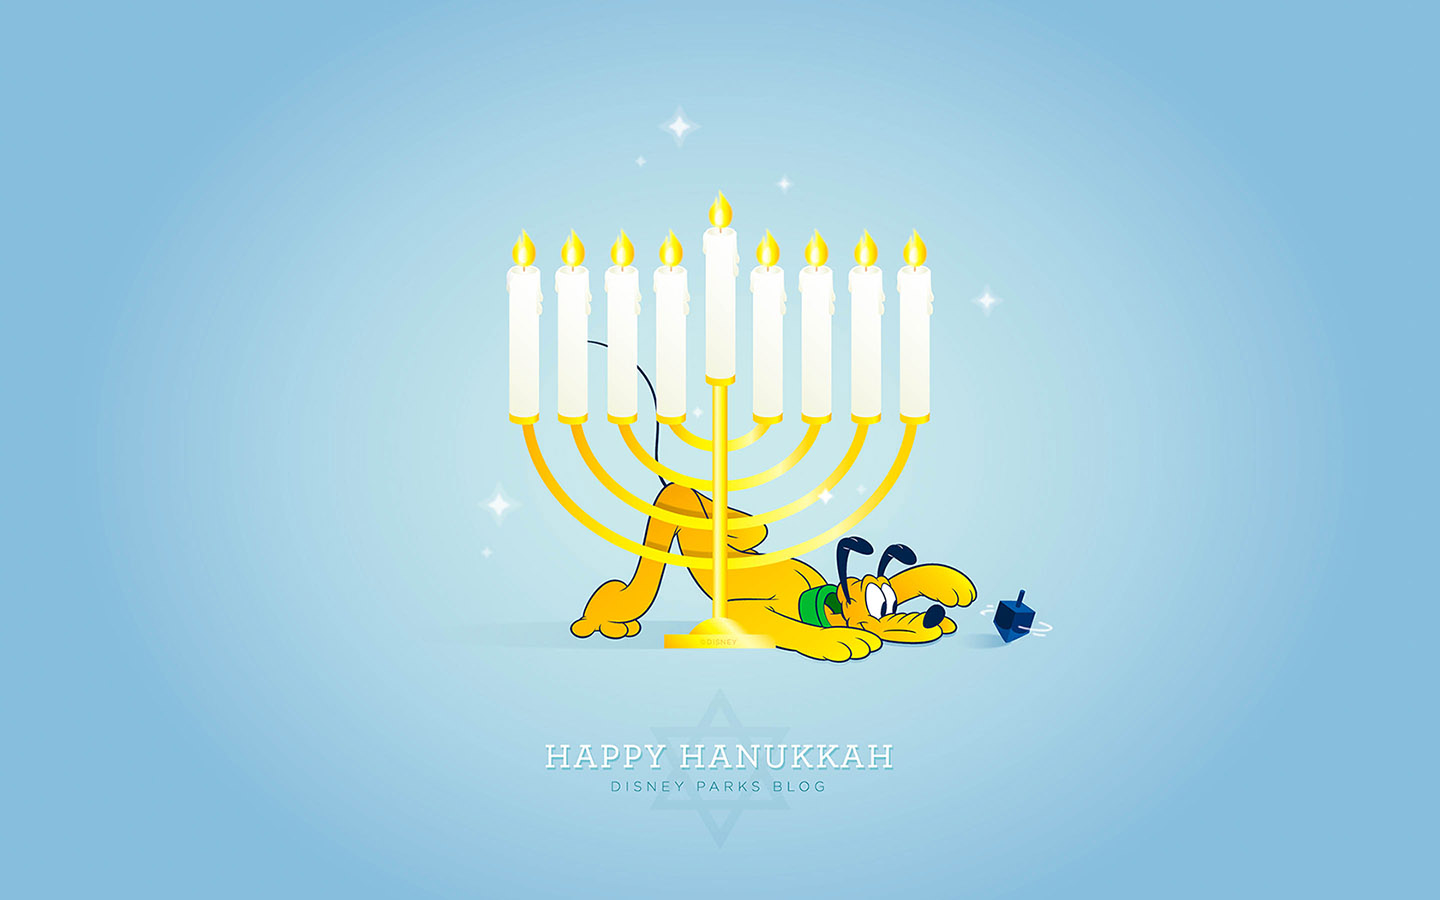 Celebrate Hanukkah with Our Latest Disney Parks Wallpaper Disney 1440x900